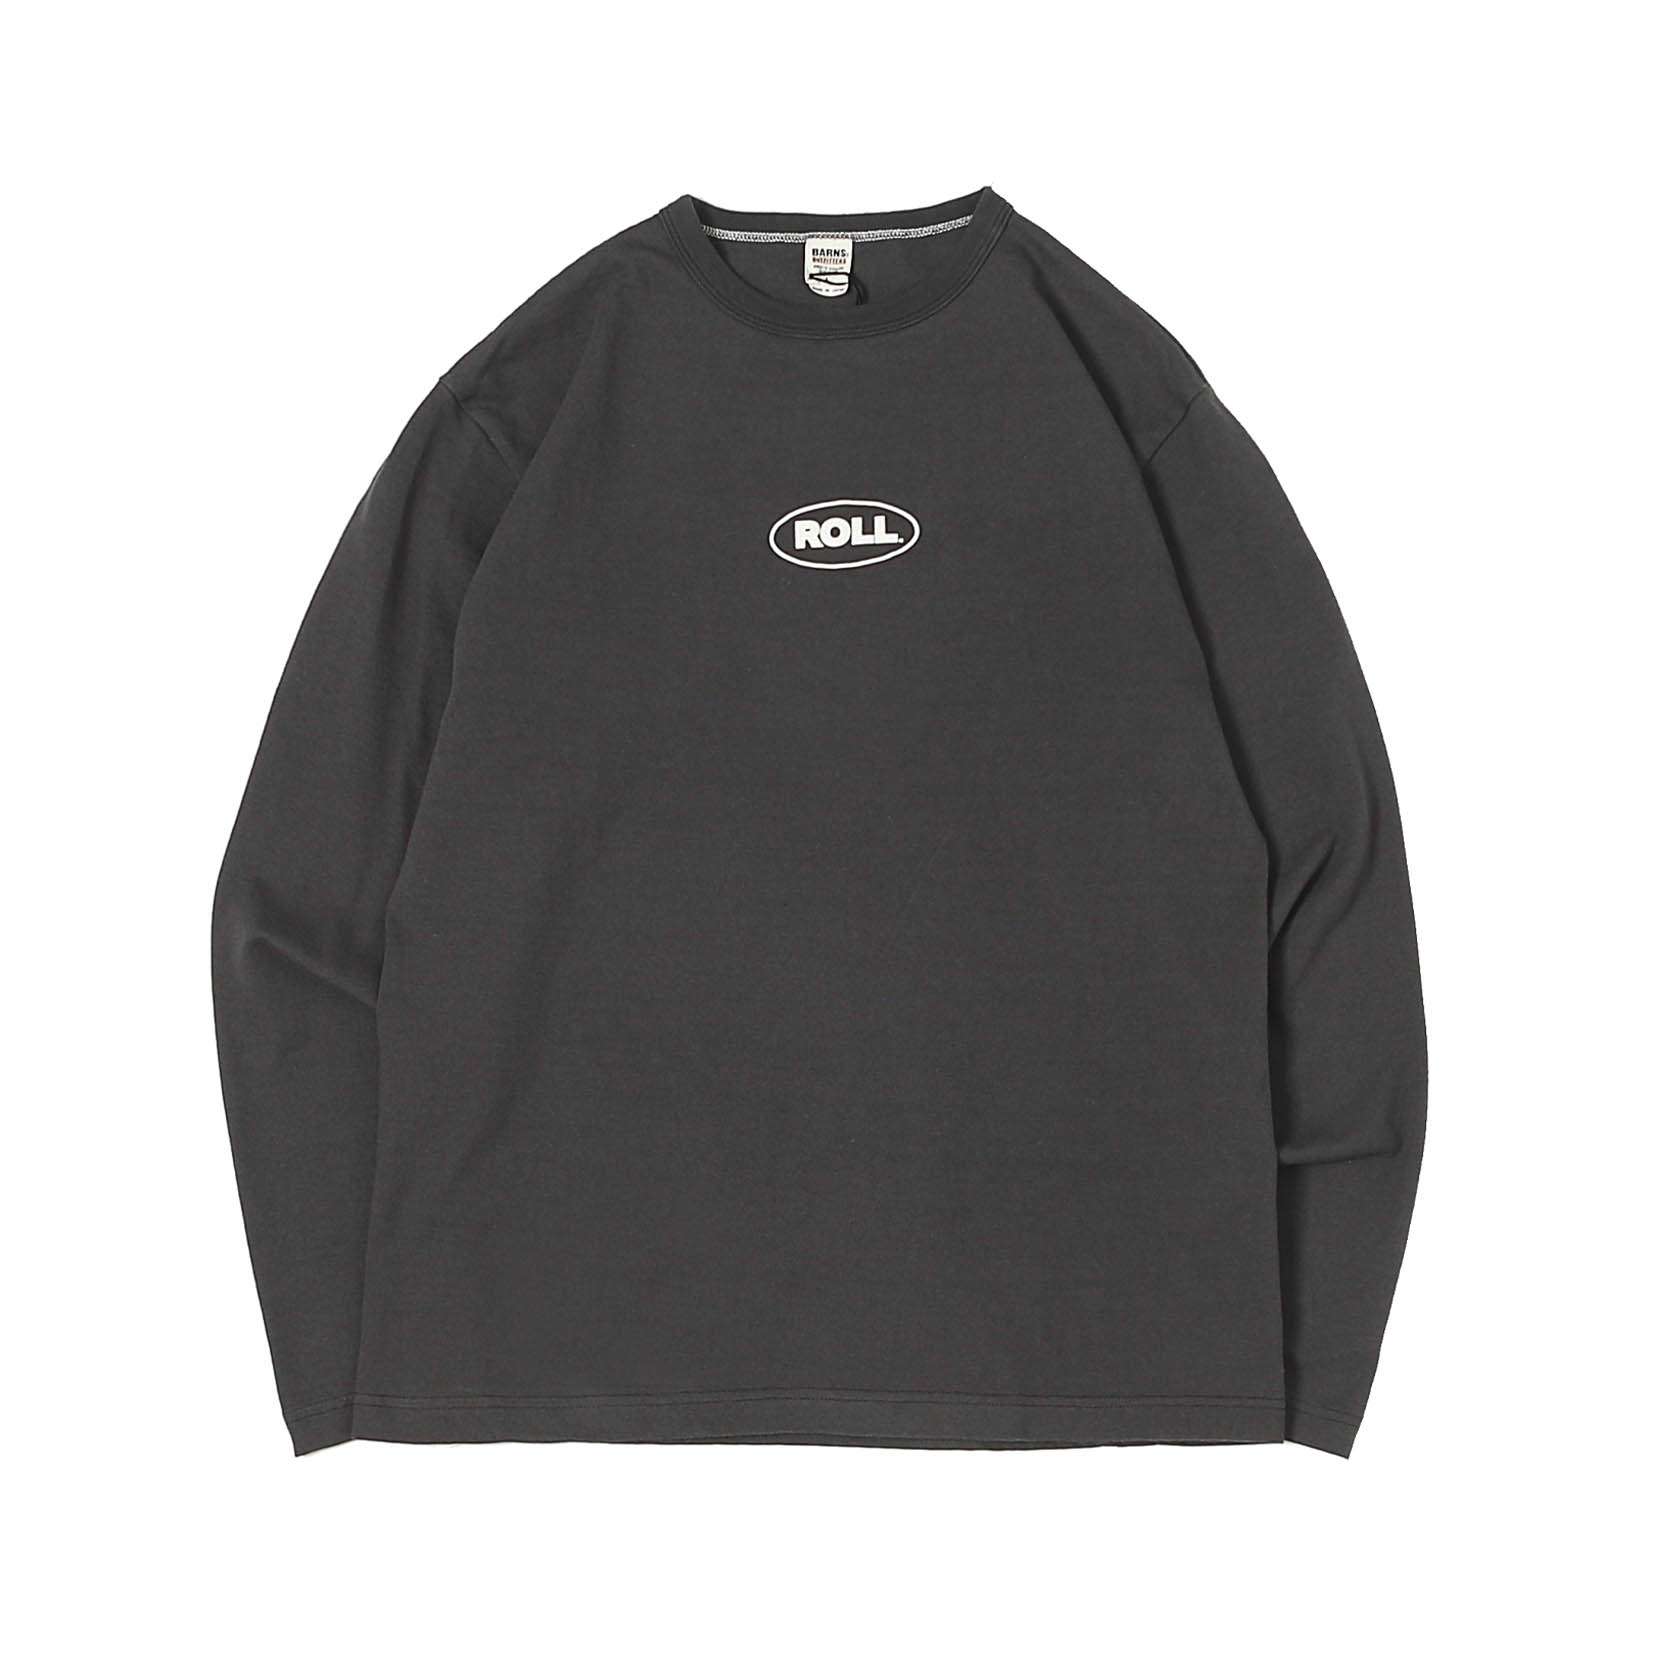 L/S PRINTED TEE - MINI ROLL BLACK